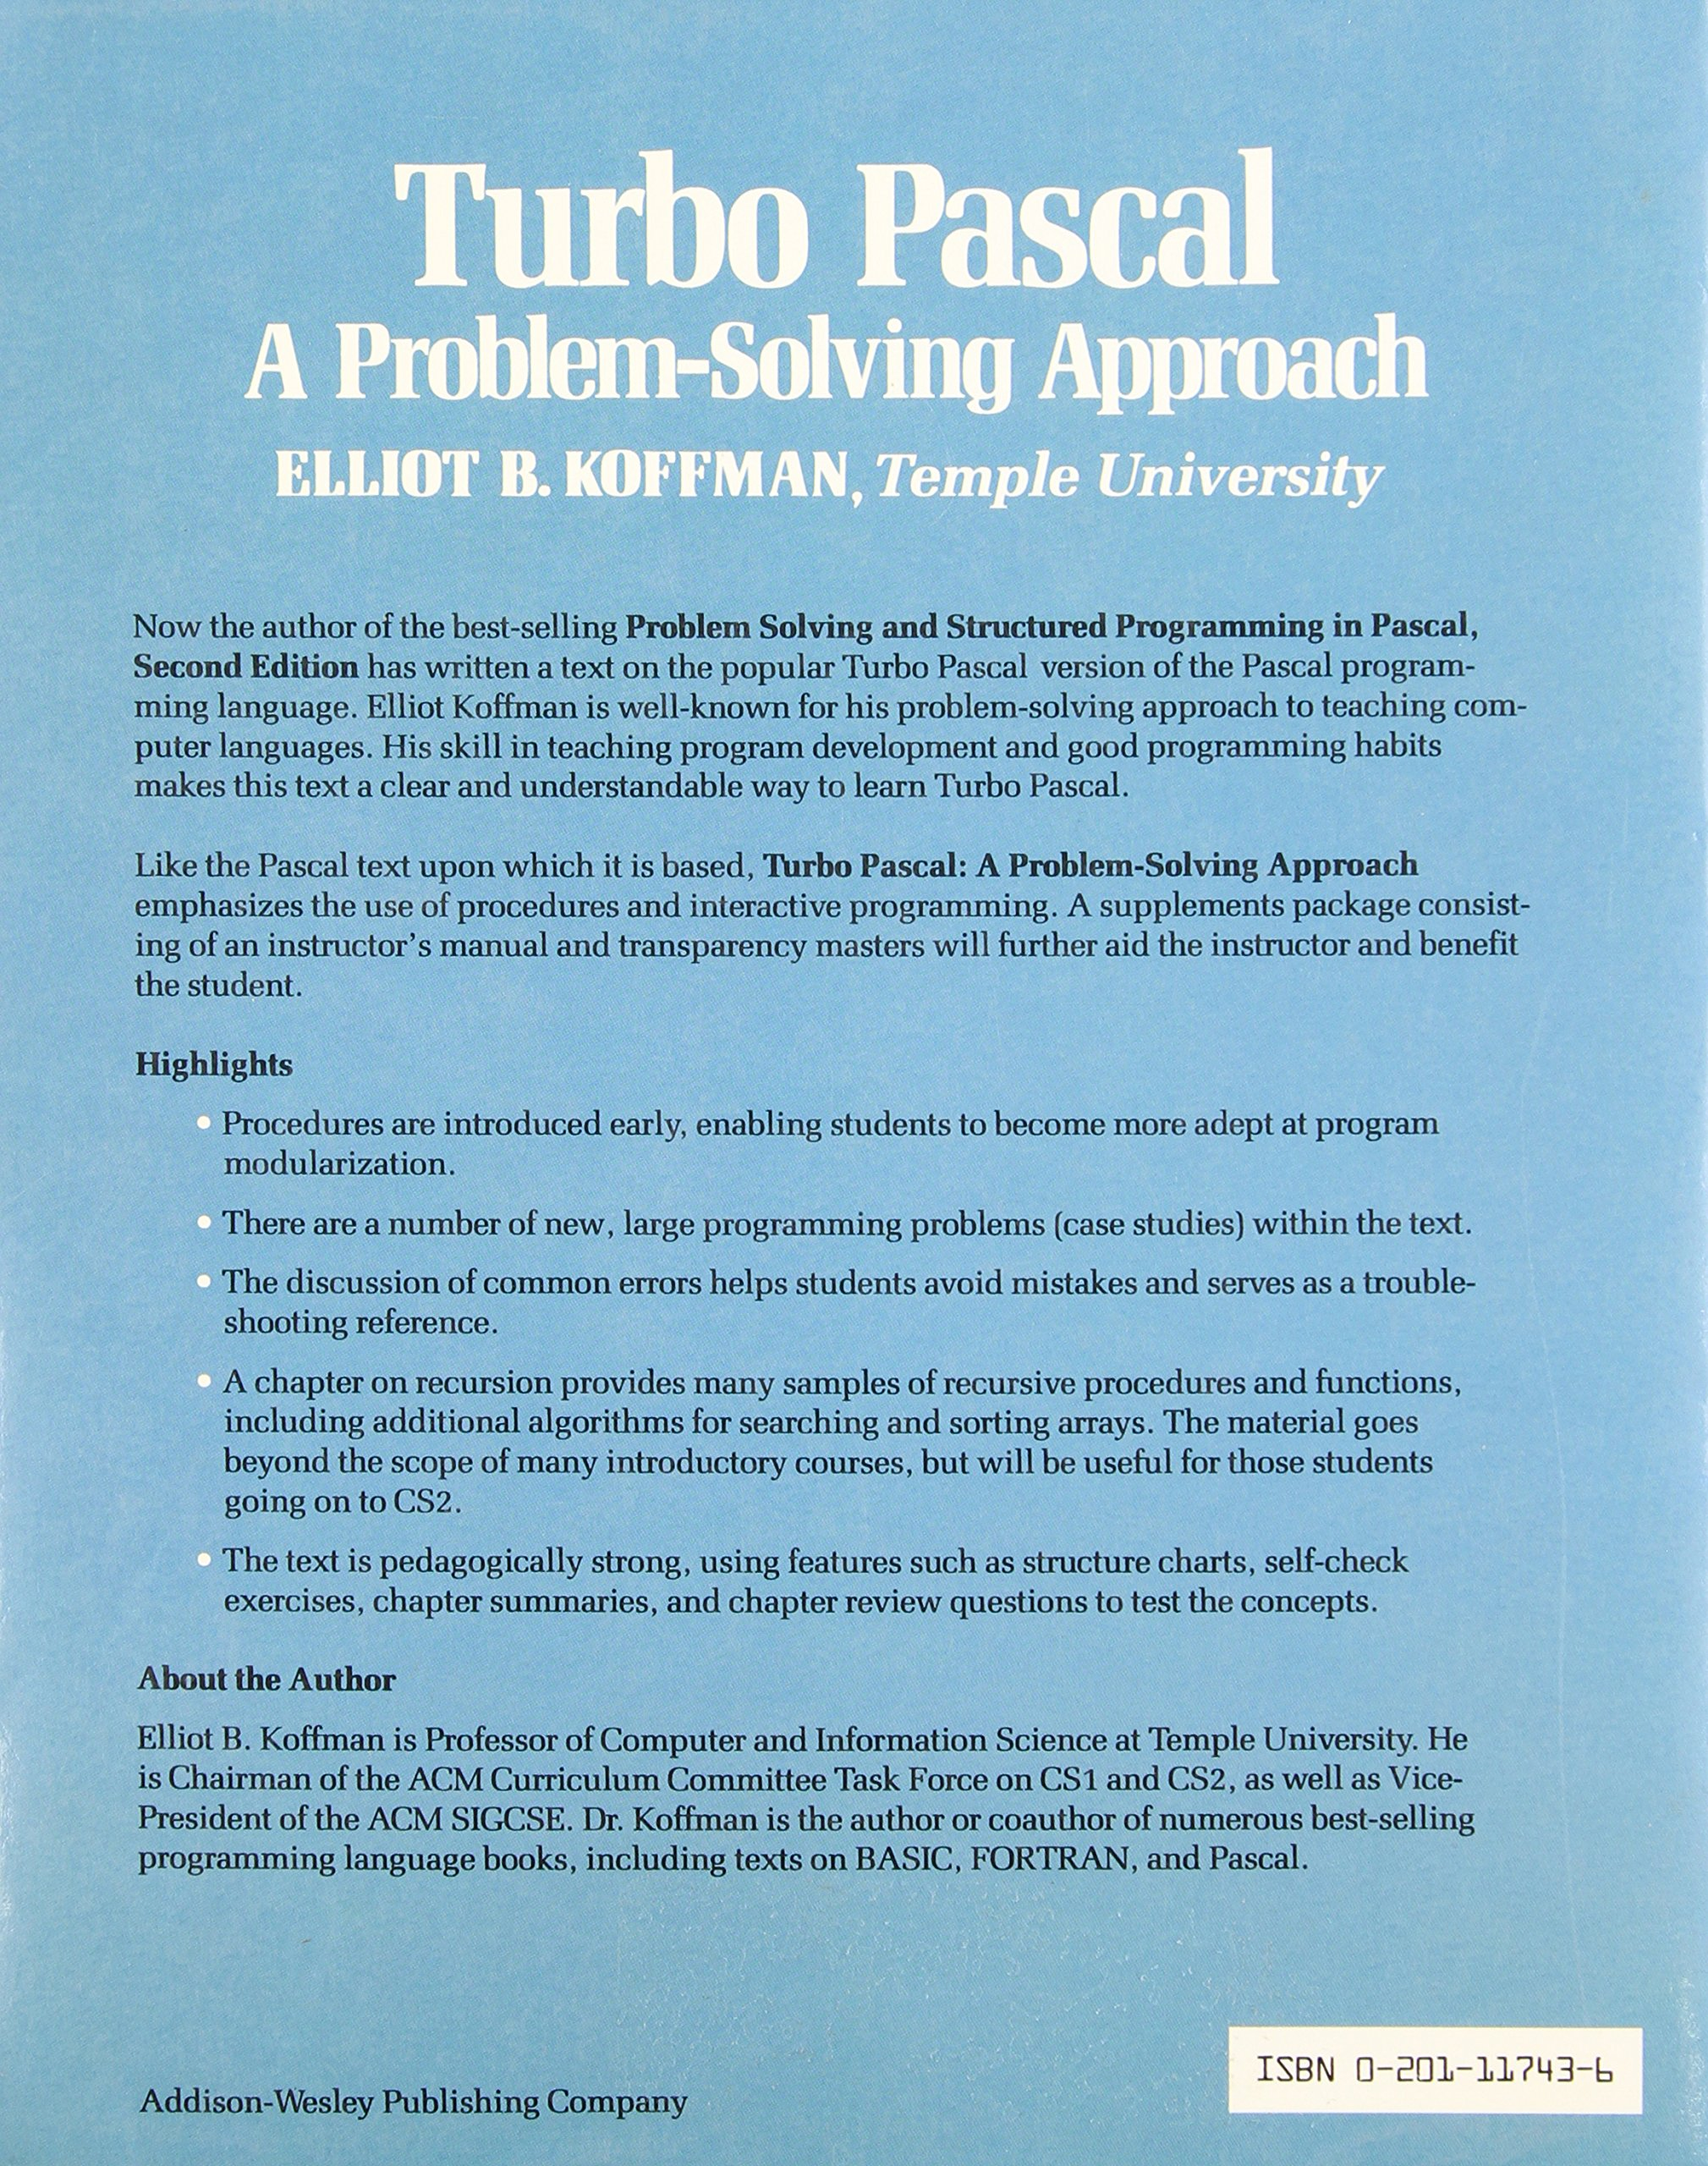 Turbo PASCAL: A Problem-solving Approach (Addison-Wesley series in computer science): Elliot B. Koffman: 9780201117431: Amazon.com: Books